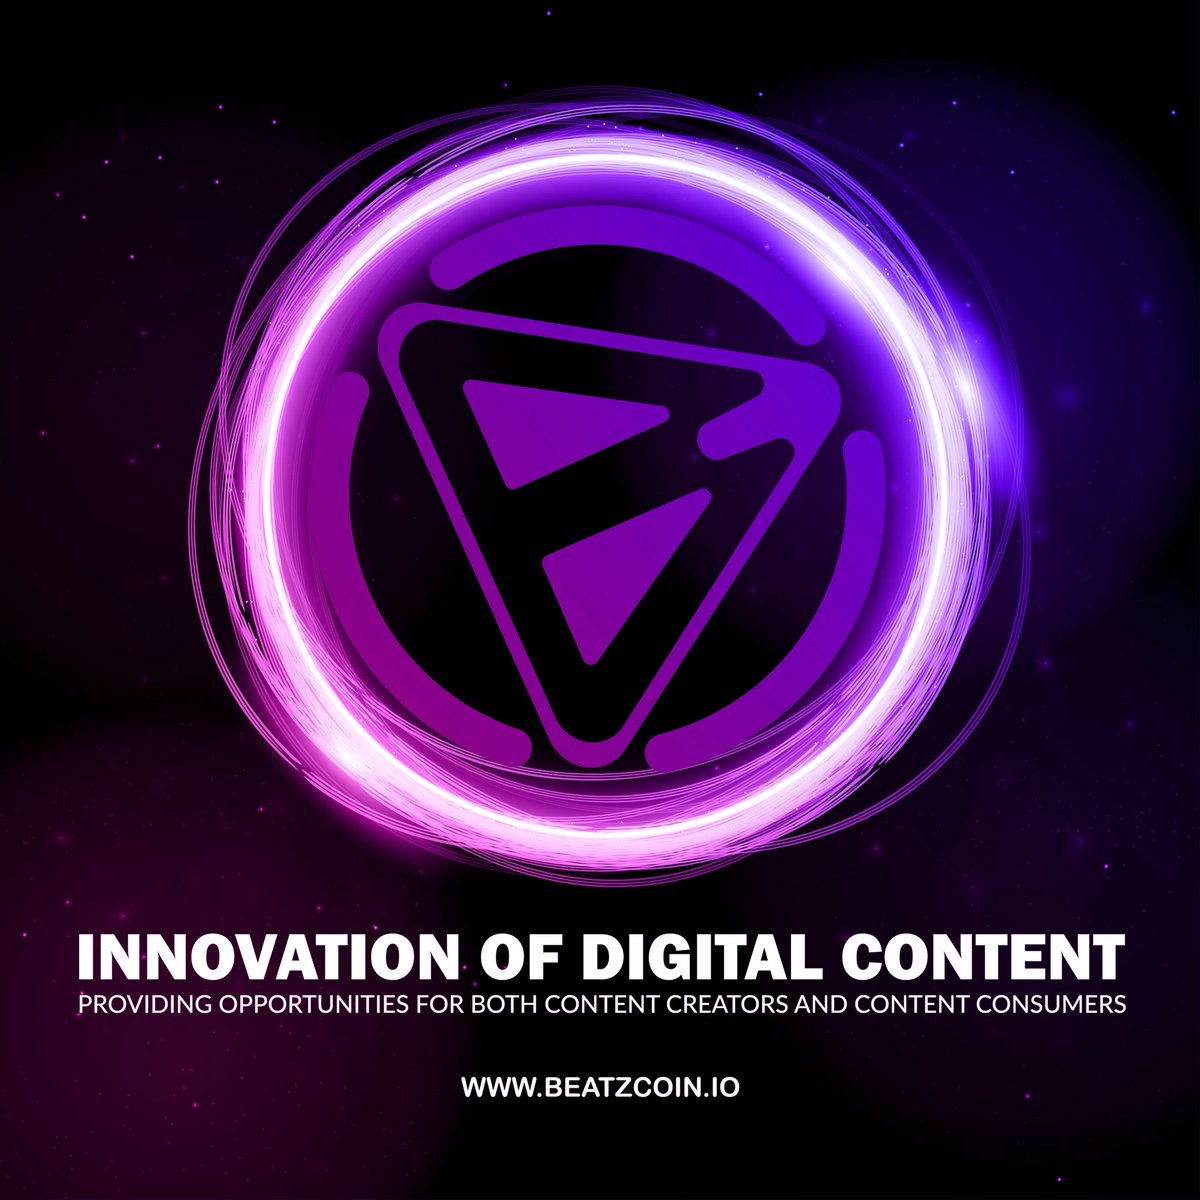 I'm giving $20 of $BTZC (32,129 BeatzCoin) to one person within 60 mins.  You know the drill 🤙 RT this tweet & Follow me & @BeatzCoin  VibraVid provides content creators & users a fair share of the revenue & gives ownership back to the artists who create the content we all ❤